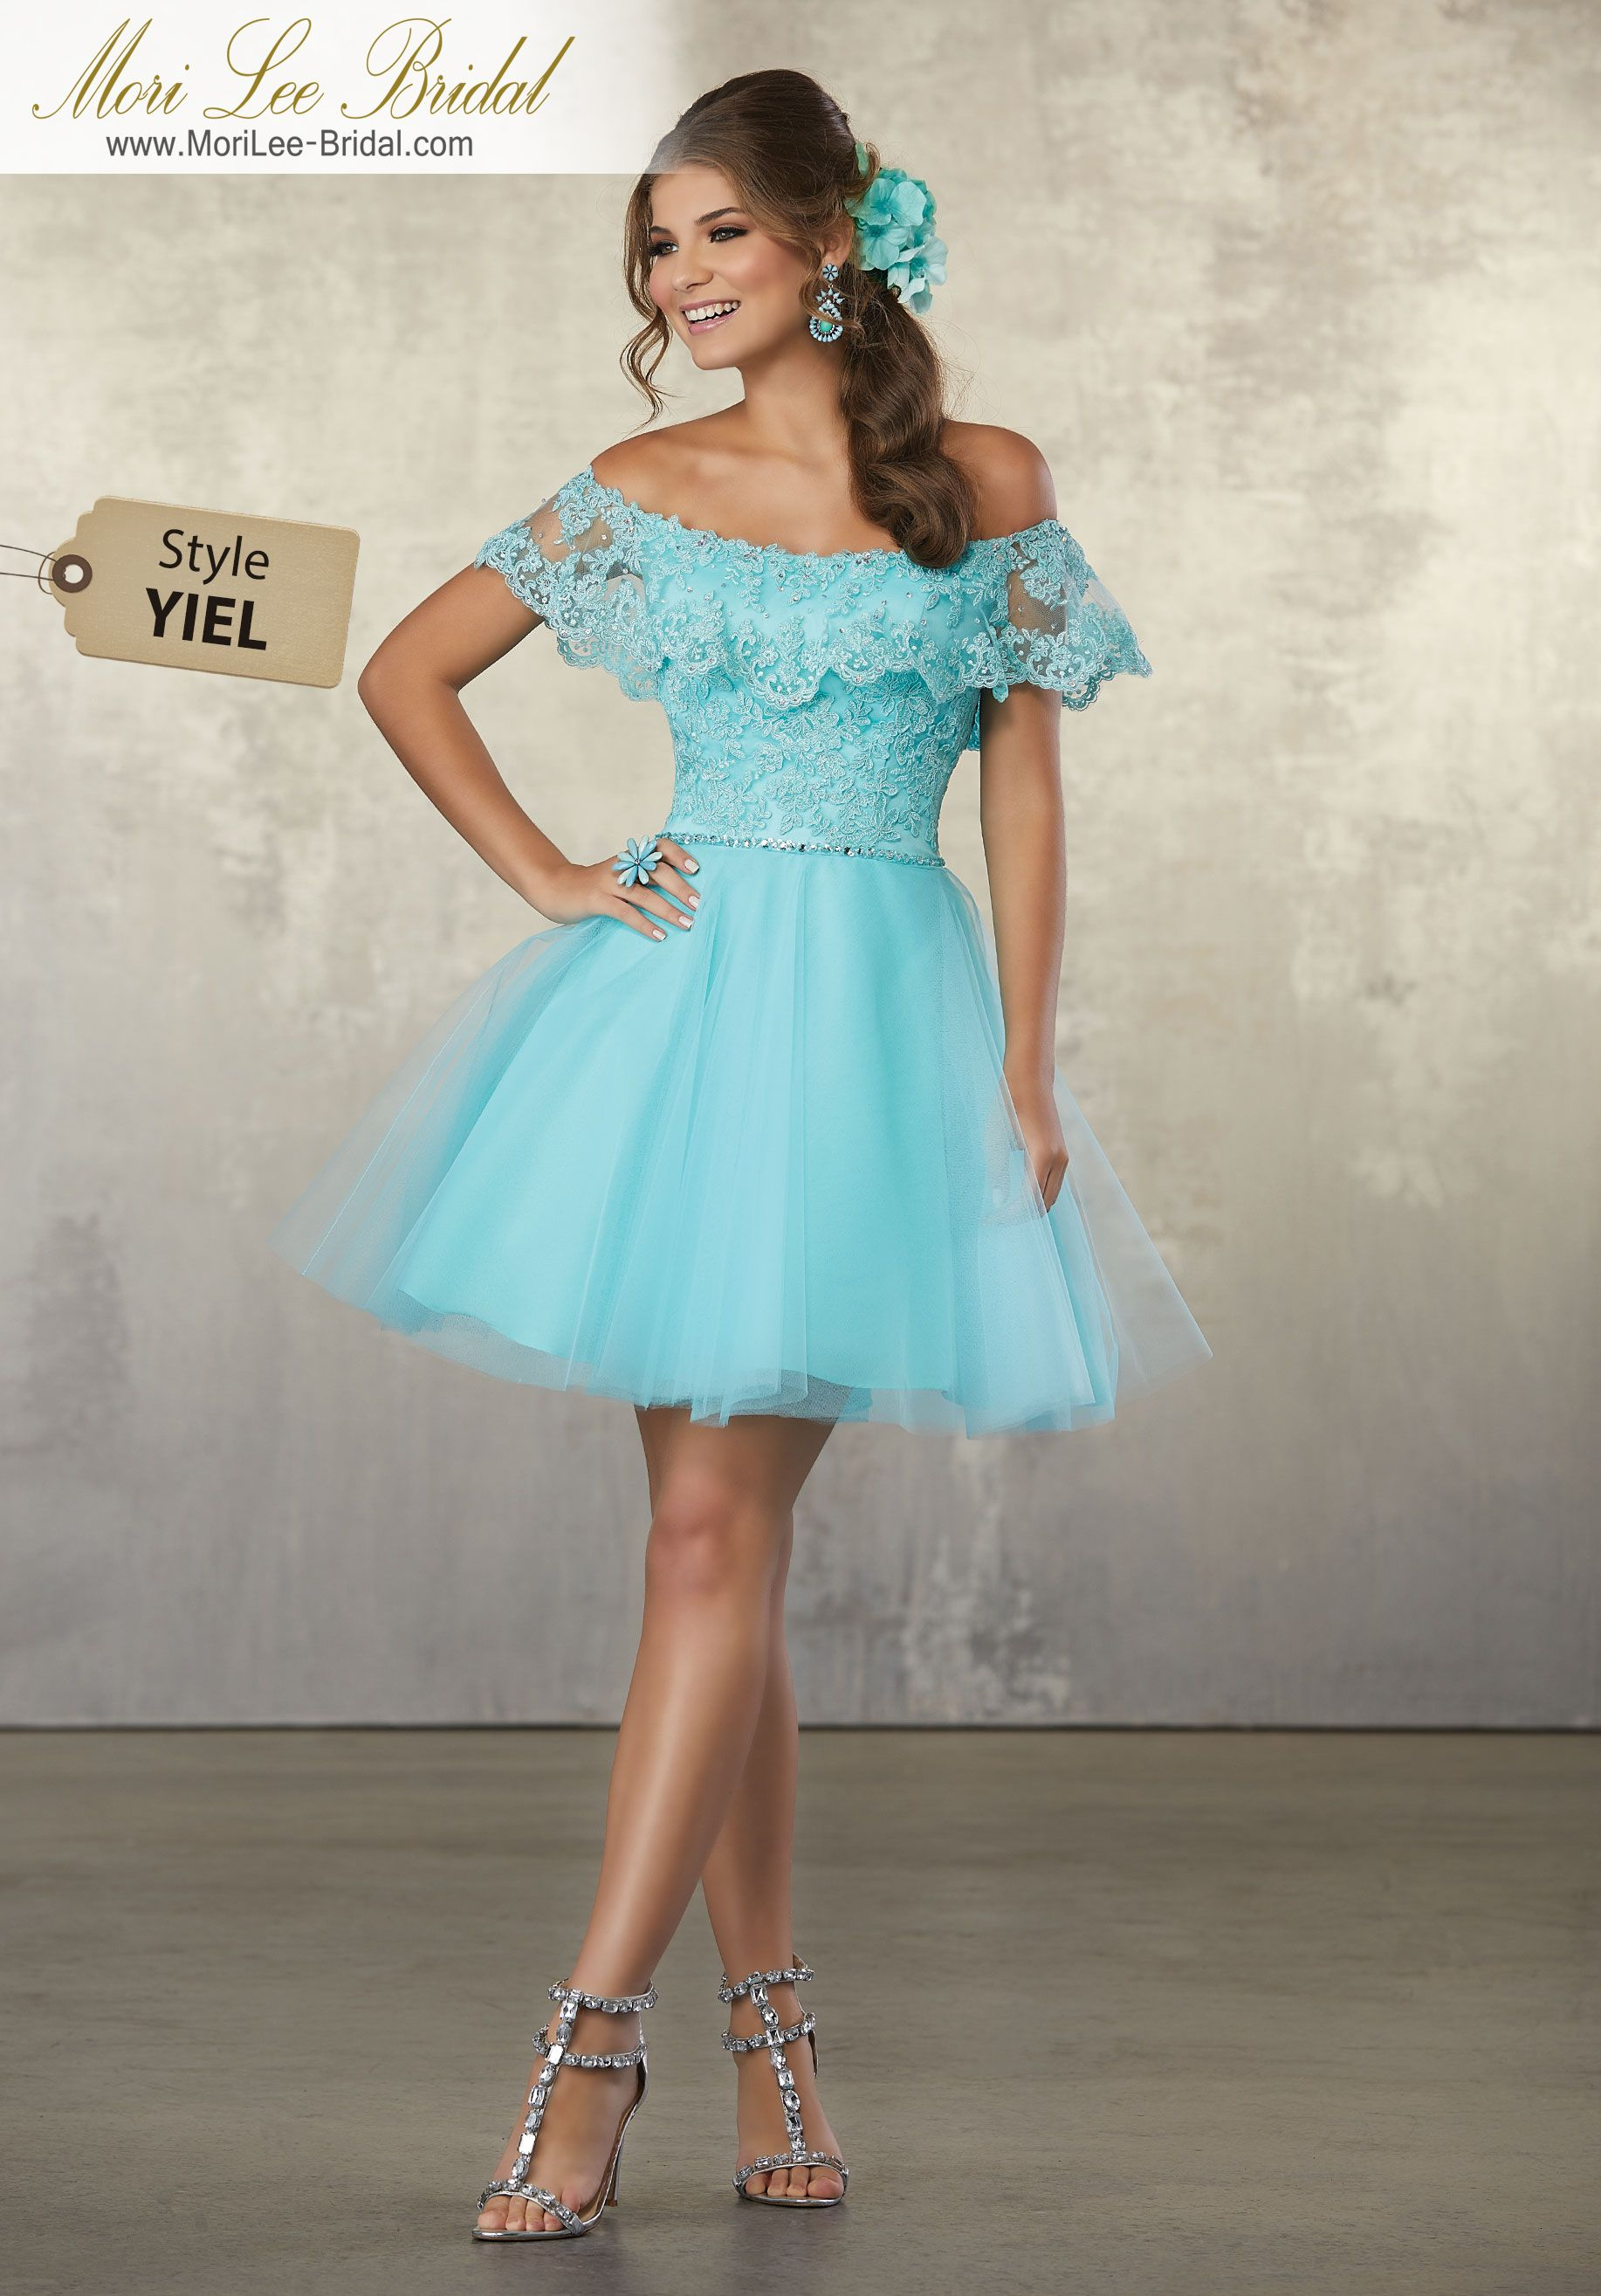 3429dc5b2d81 Style YIEL Lace and Tulle Party Dress with Off the Shoulder Flounced  Neckline Colors Available  Aqua